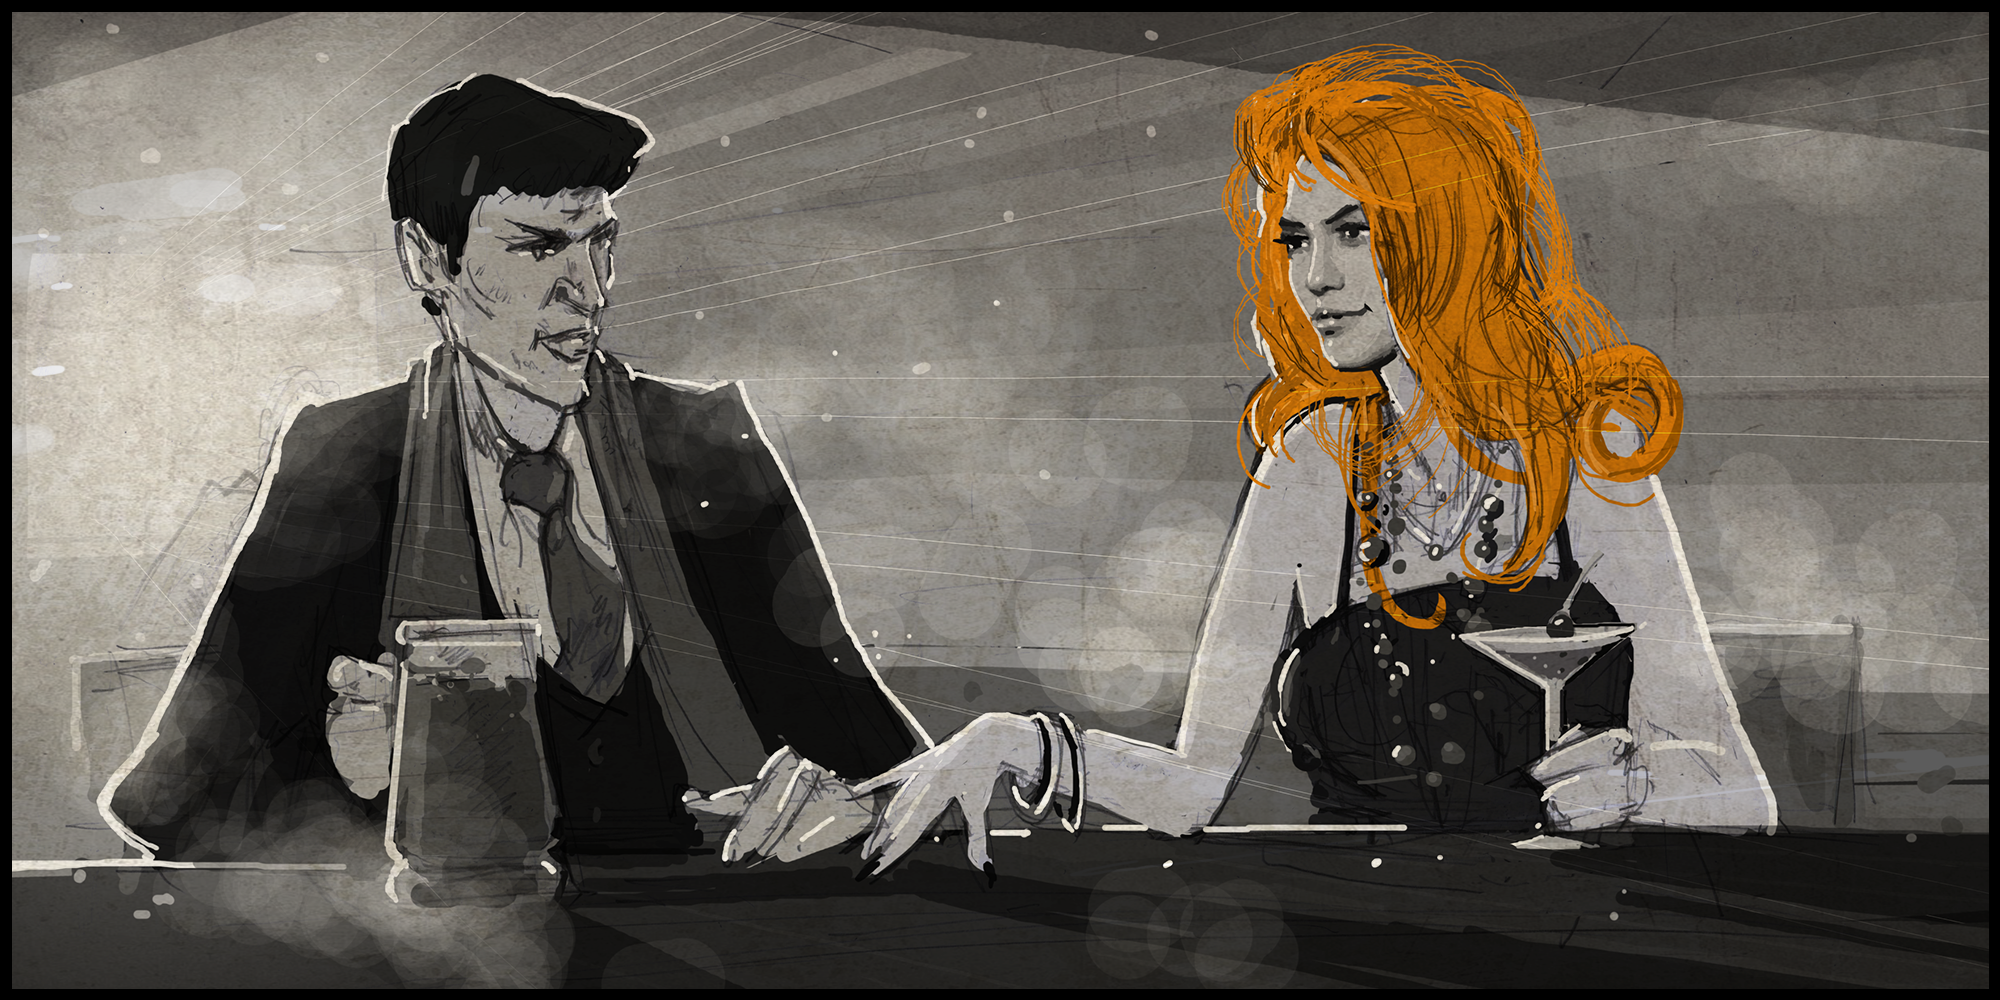 Frank and lady in the bar